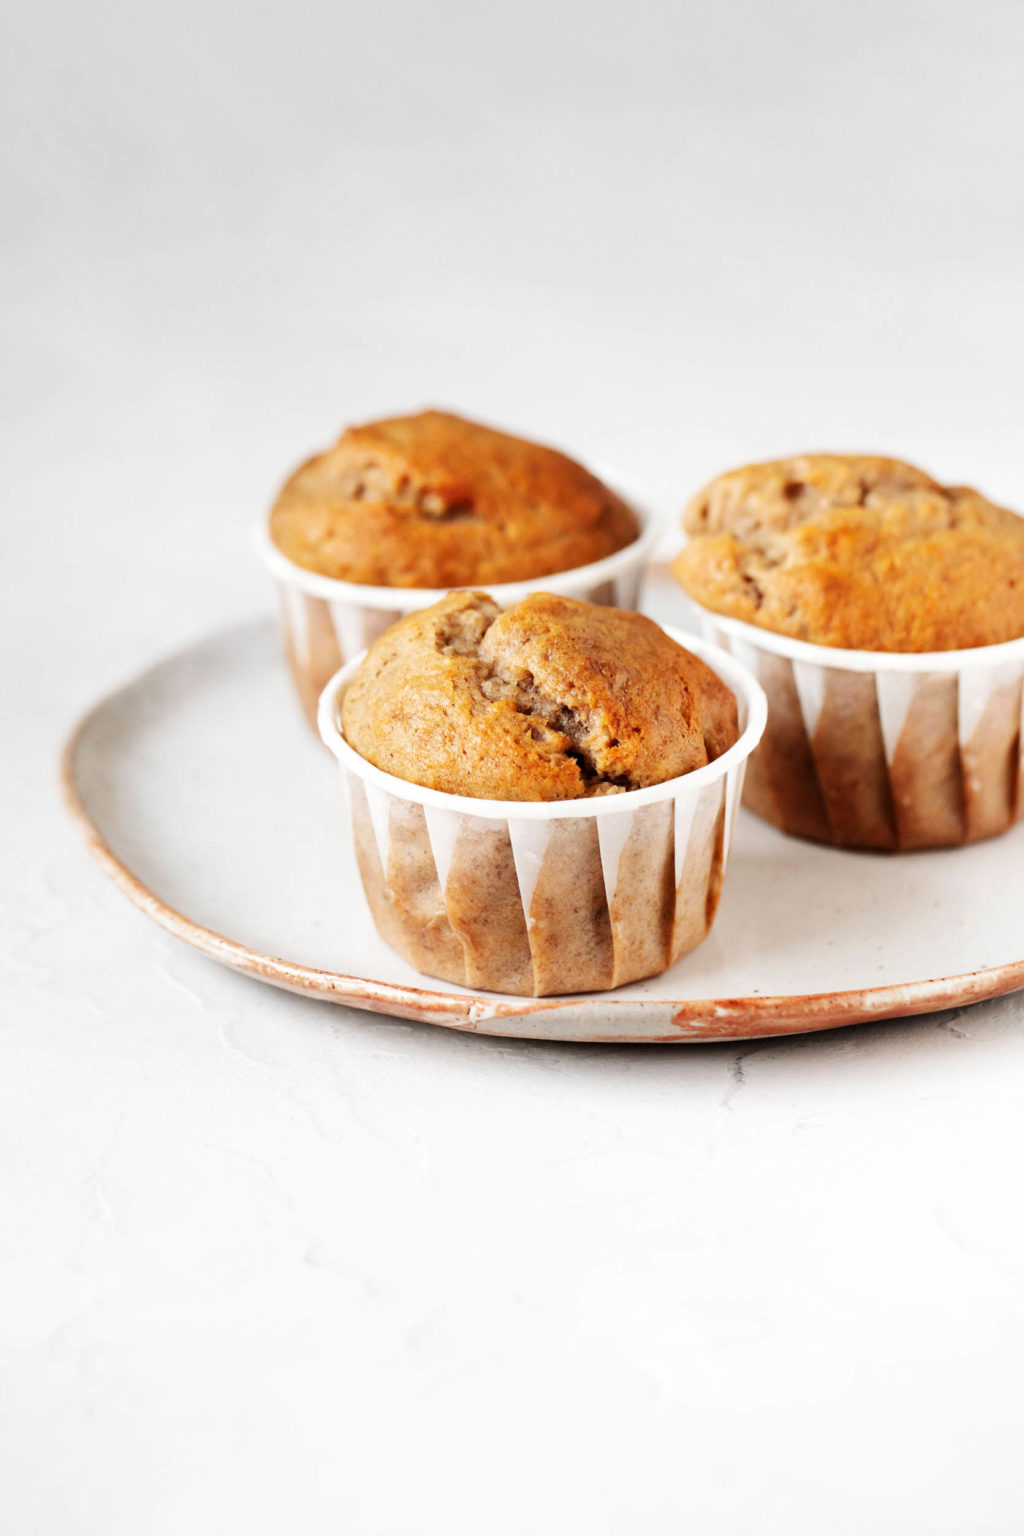 Three vegan banana walnut muffins are arranged on a white ceramic plate. The plate rests on a white surface.